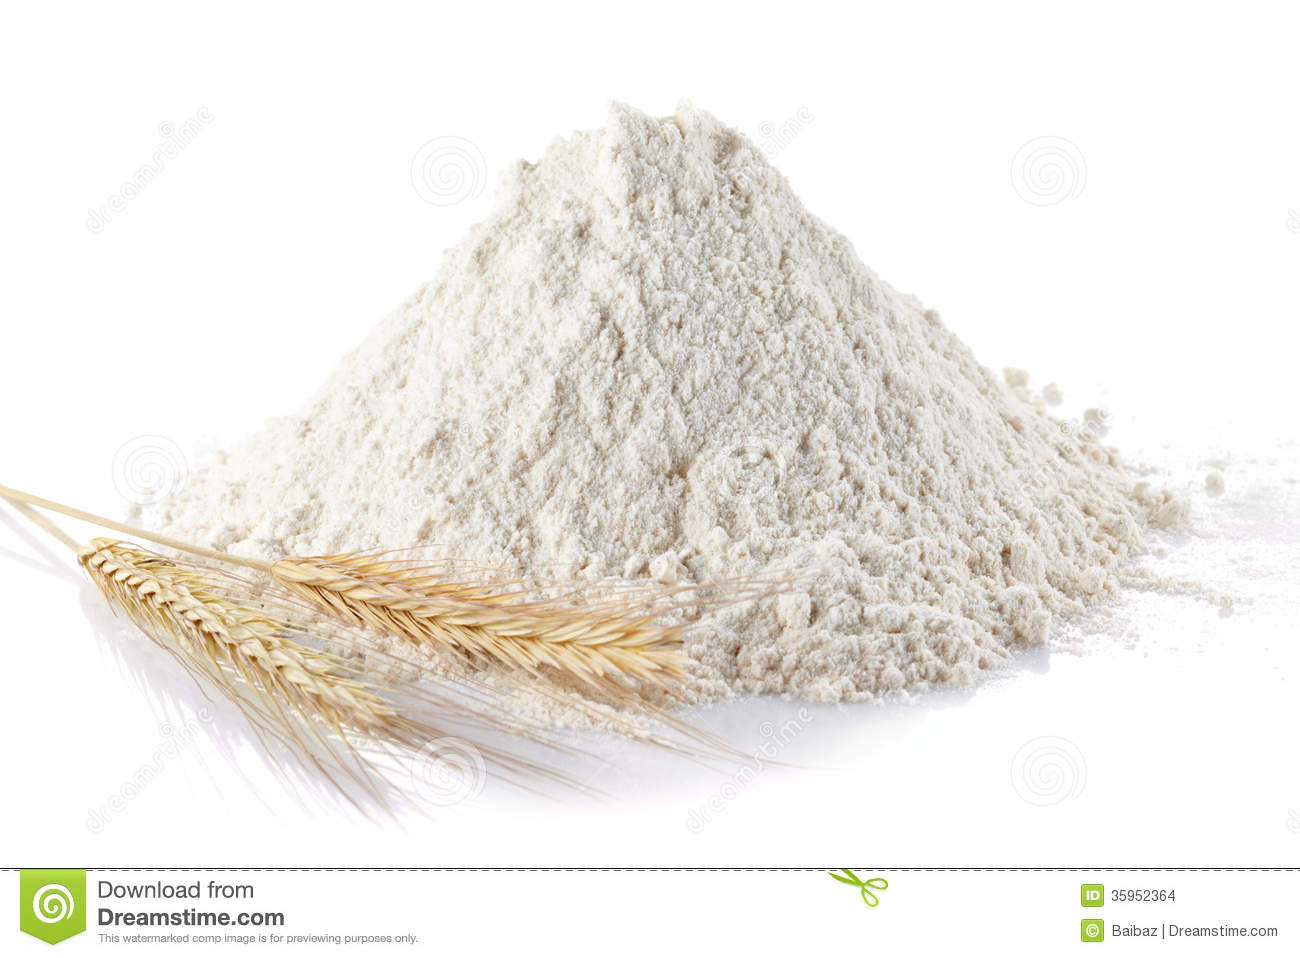 Heap of wheat flour and wheat ears on isolated white background.